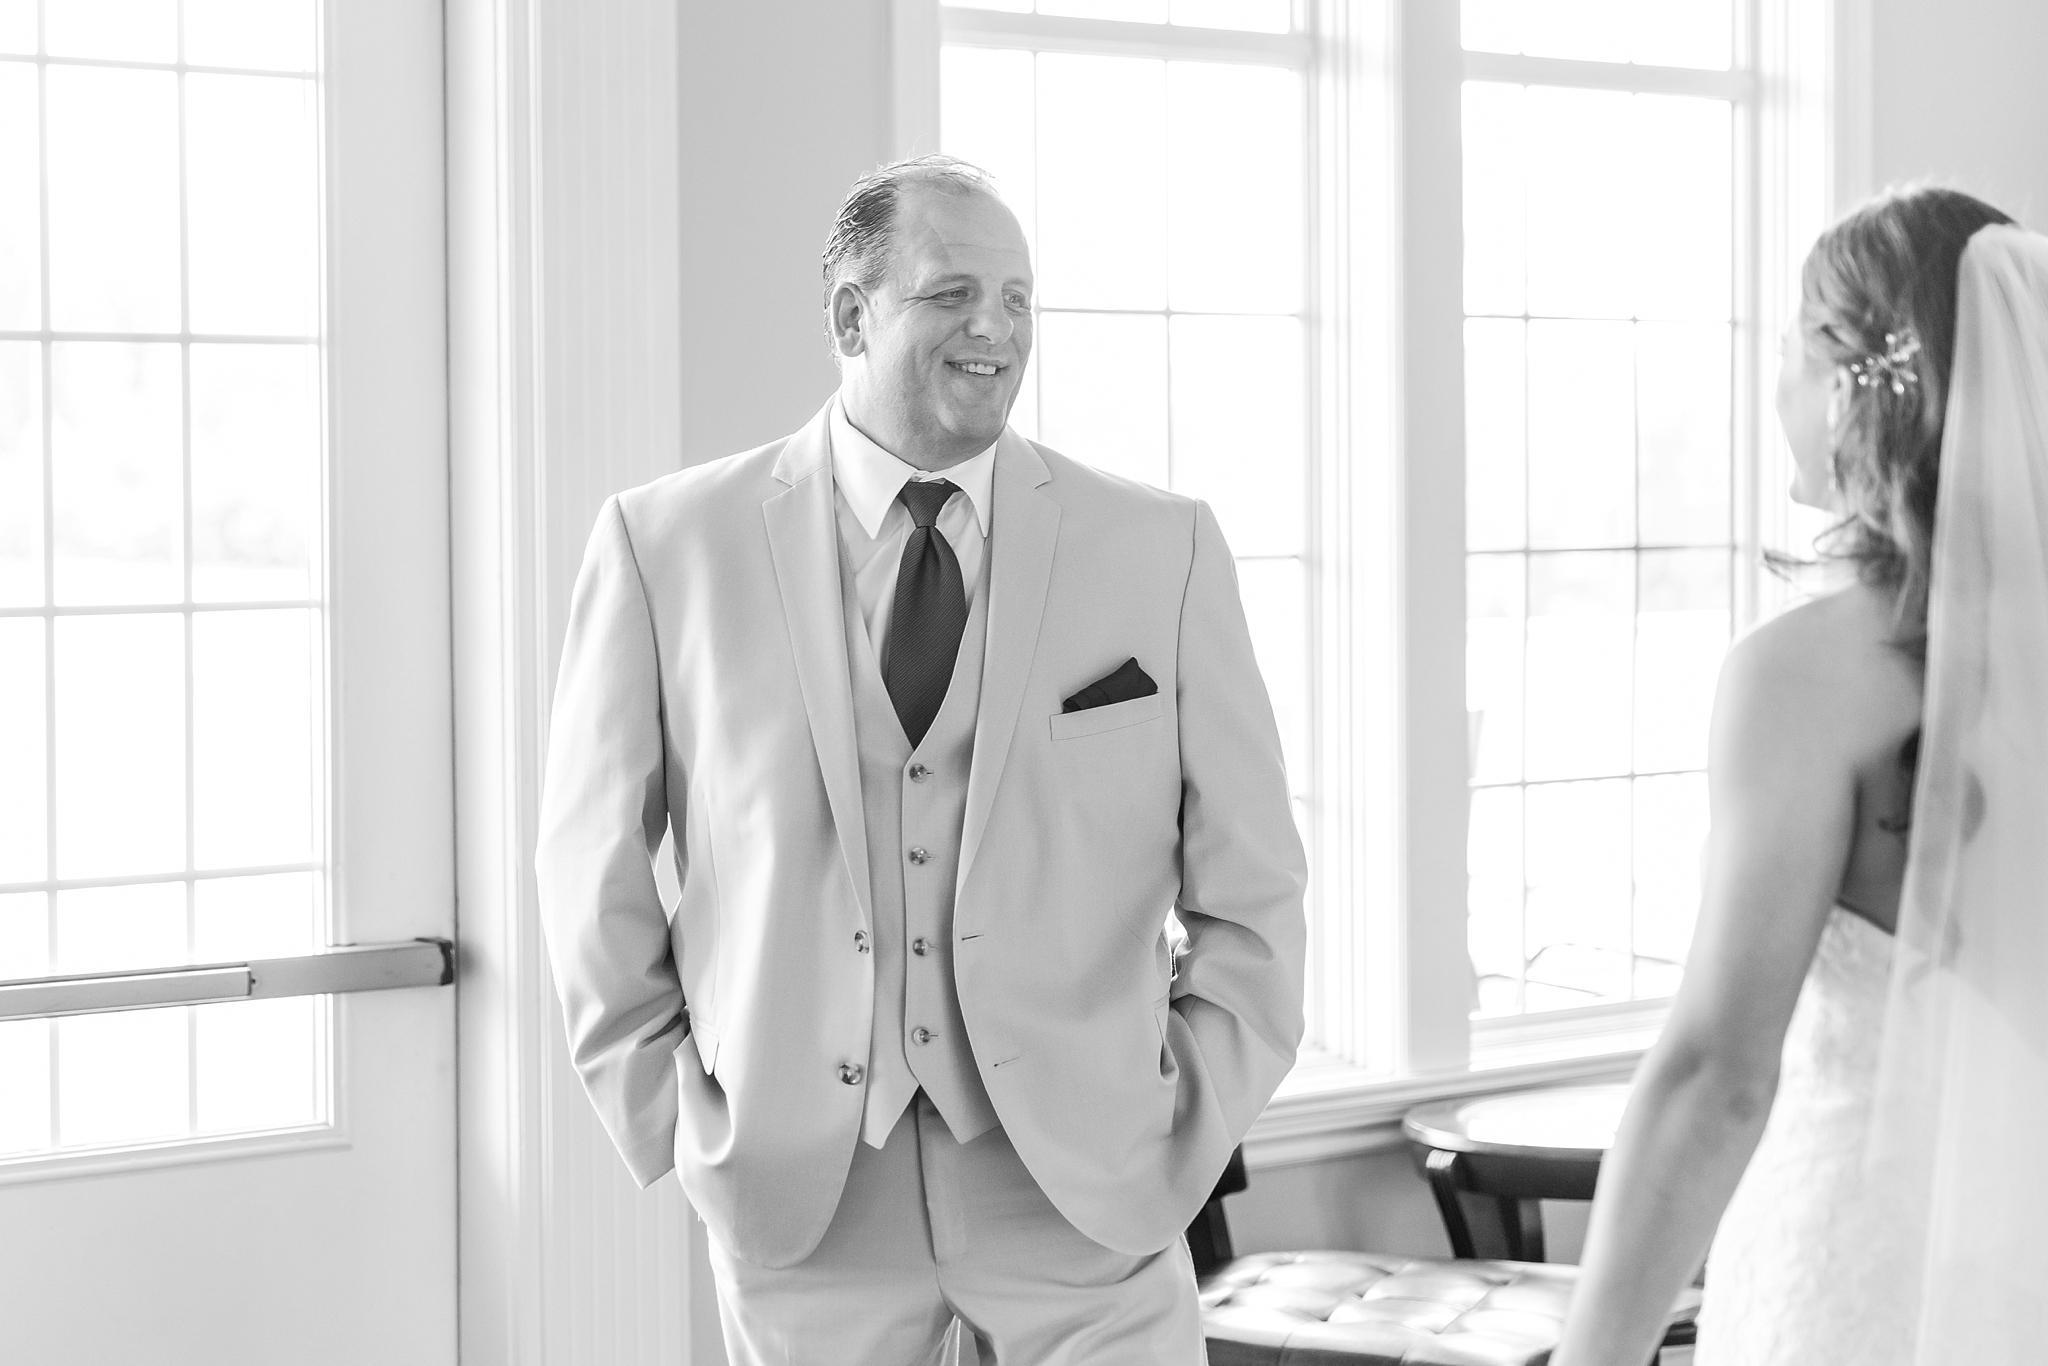 candid-timeless-wedding-photos-at-the-captains-club-in-grand-blanc-michigan-by-courtney-carolyn-photography_0026.jpg